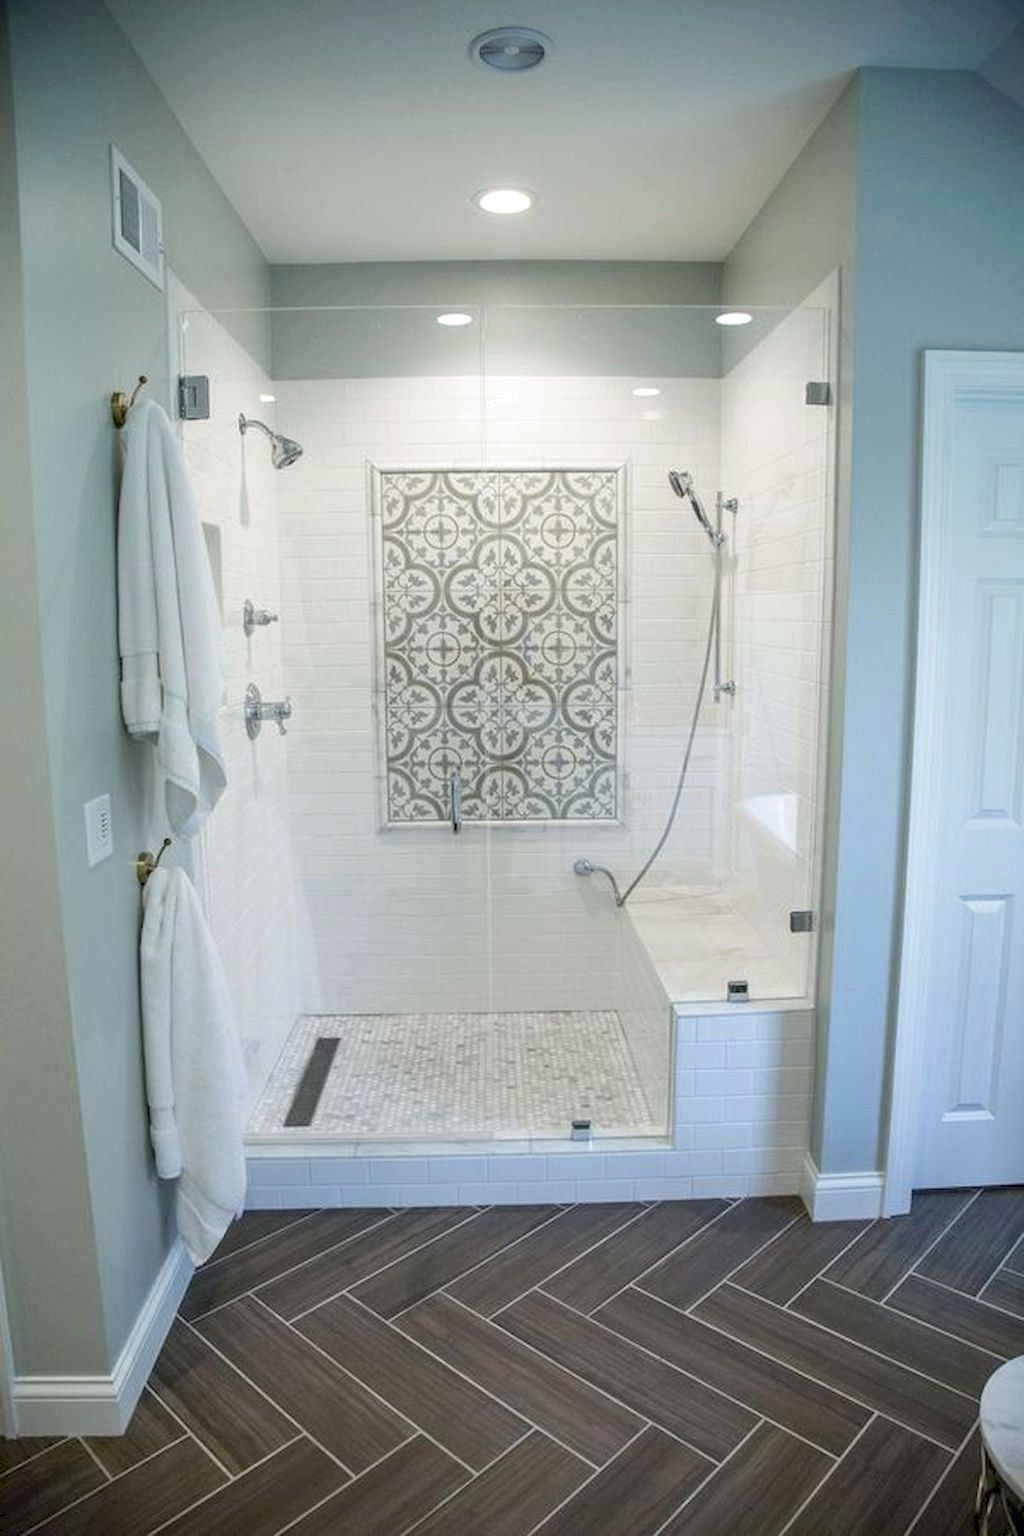 82 amazing farmhouse tile shower remodel ideas in 2020 on beautiful farmhouse bathroom shower decor ideas and remodel an extraordinary design id=57322